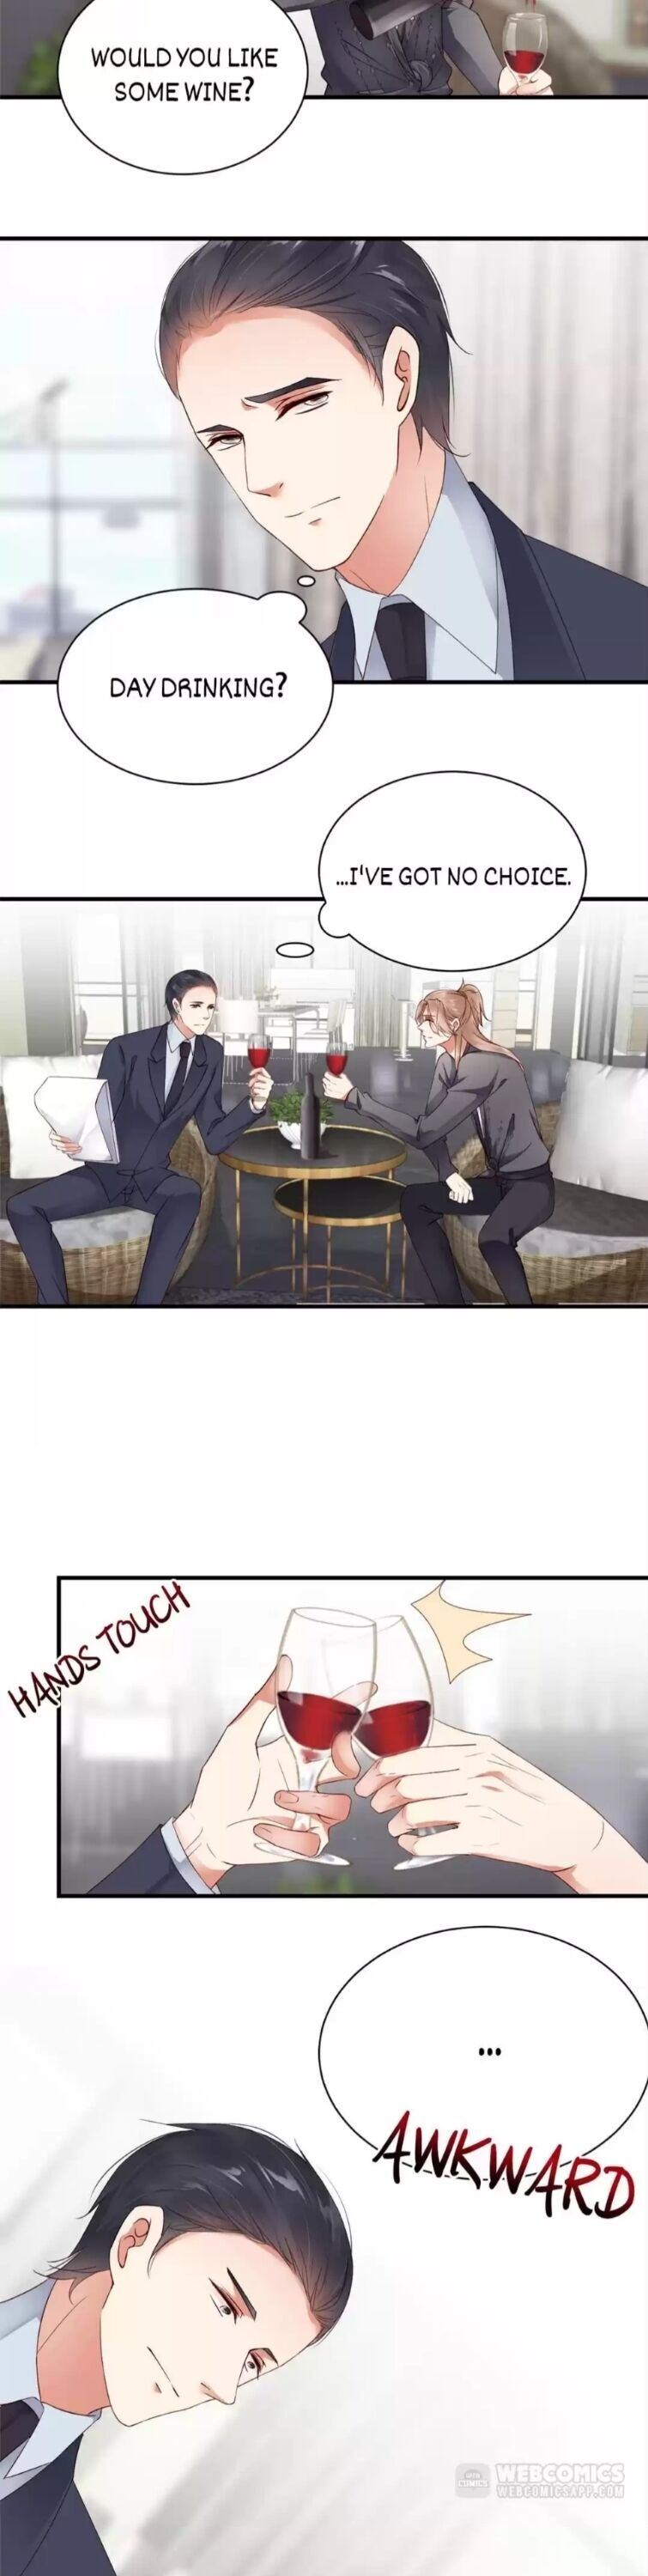 Entertainment First - chapter 49 - #3